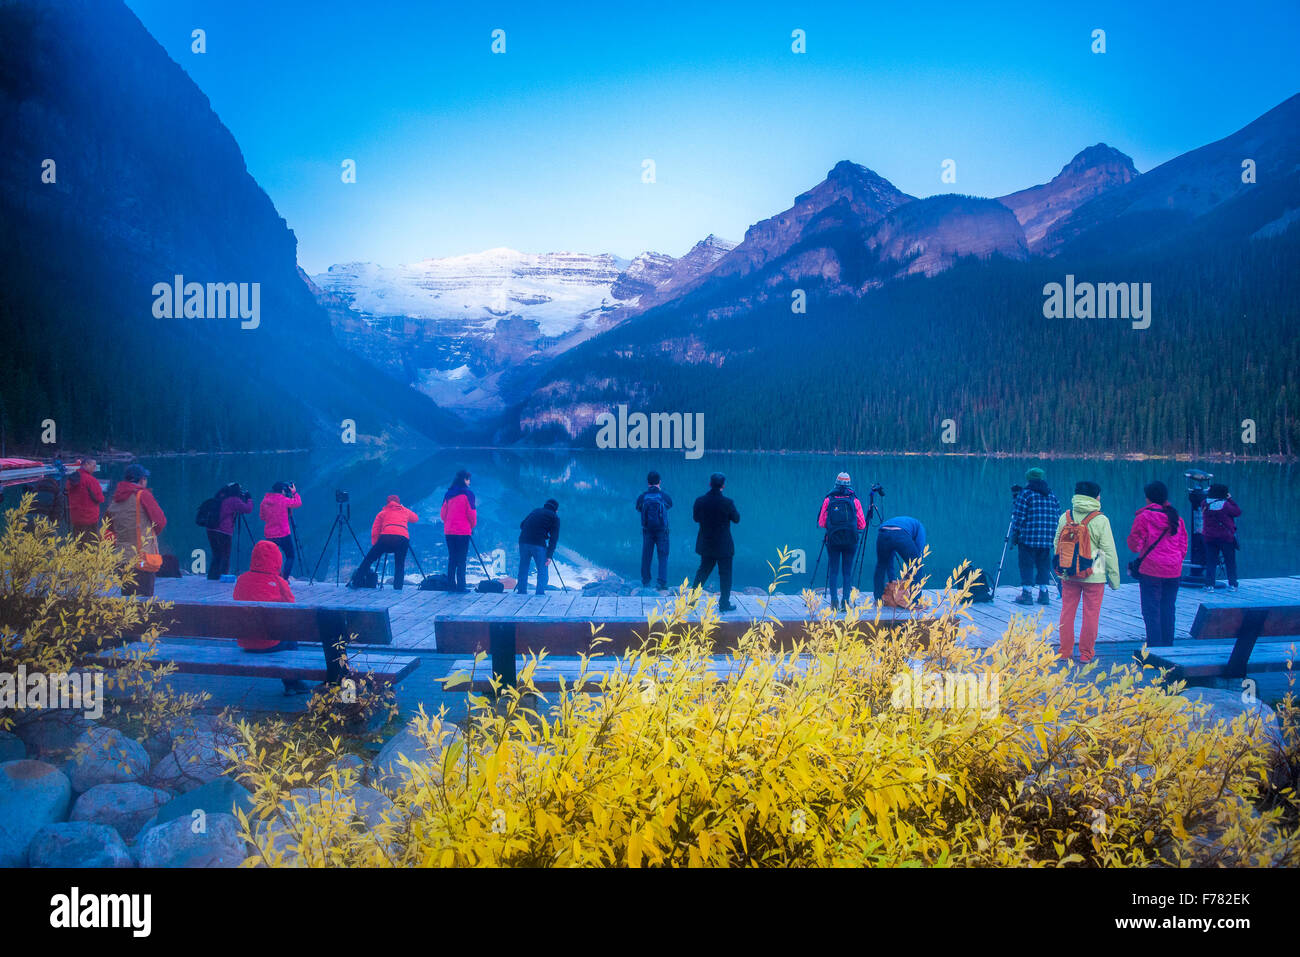 Photographers and tourists line-up at dawn, Lake Louise, Banff National Park, Alberta, Canada - Stock Image